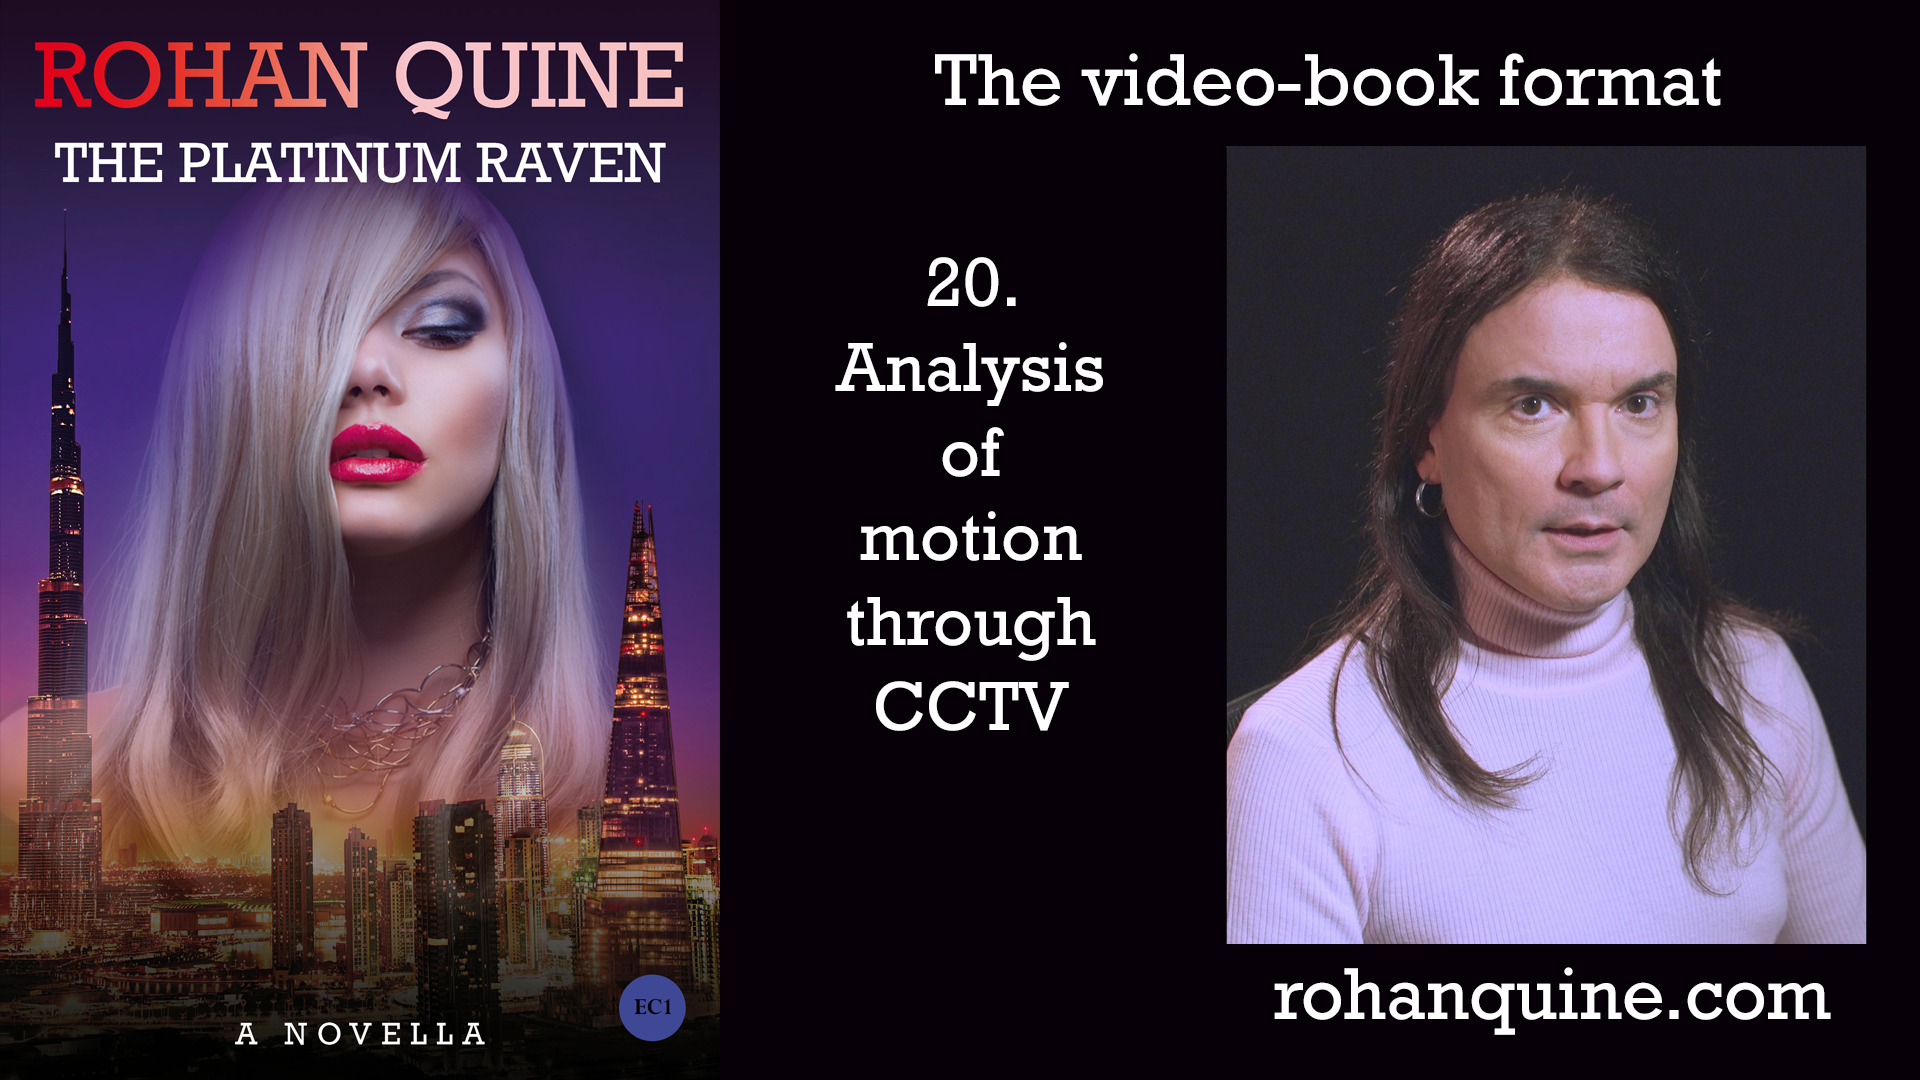 THE PLATINUM RAVEN by Rohan Quine - video-book format - chapter 20